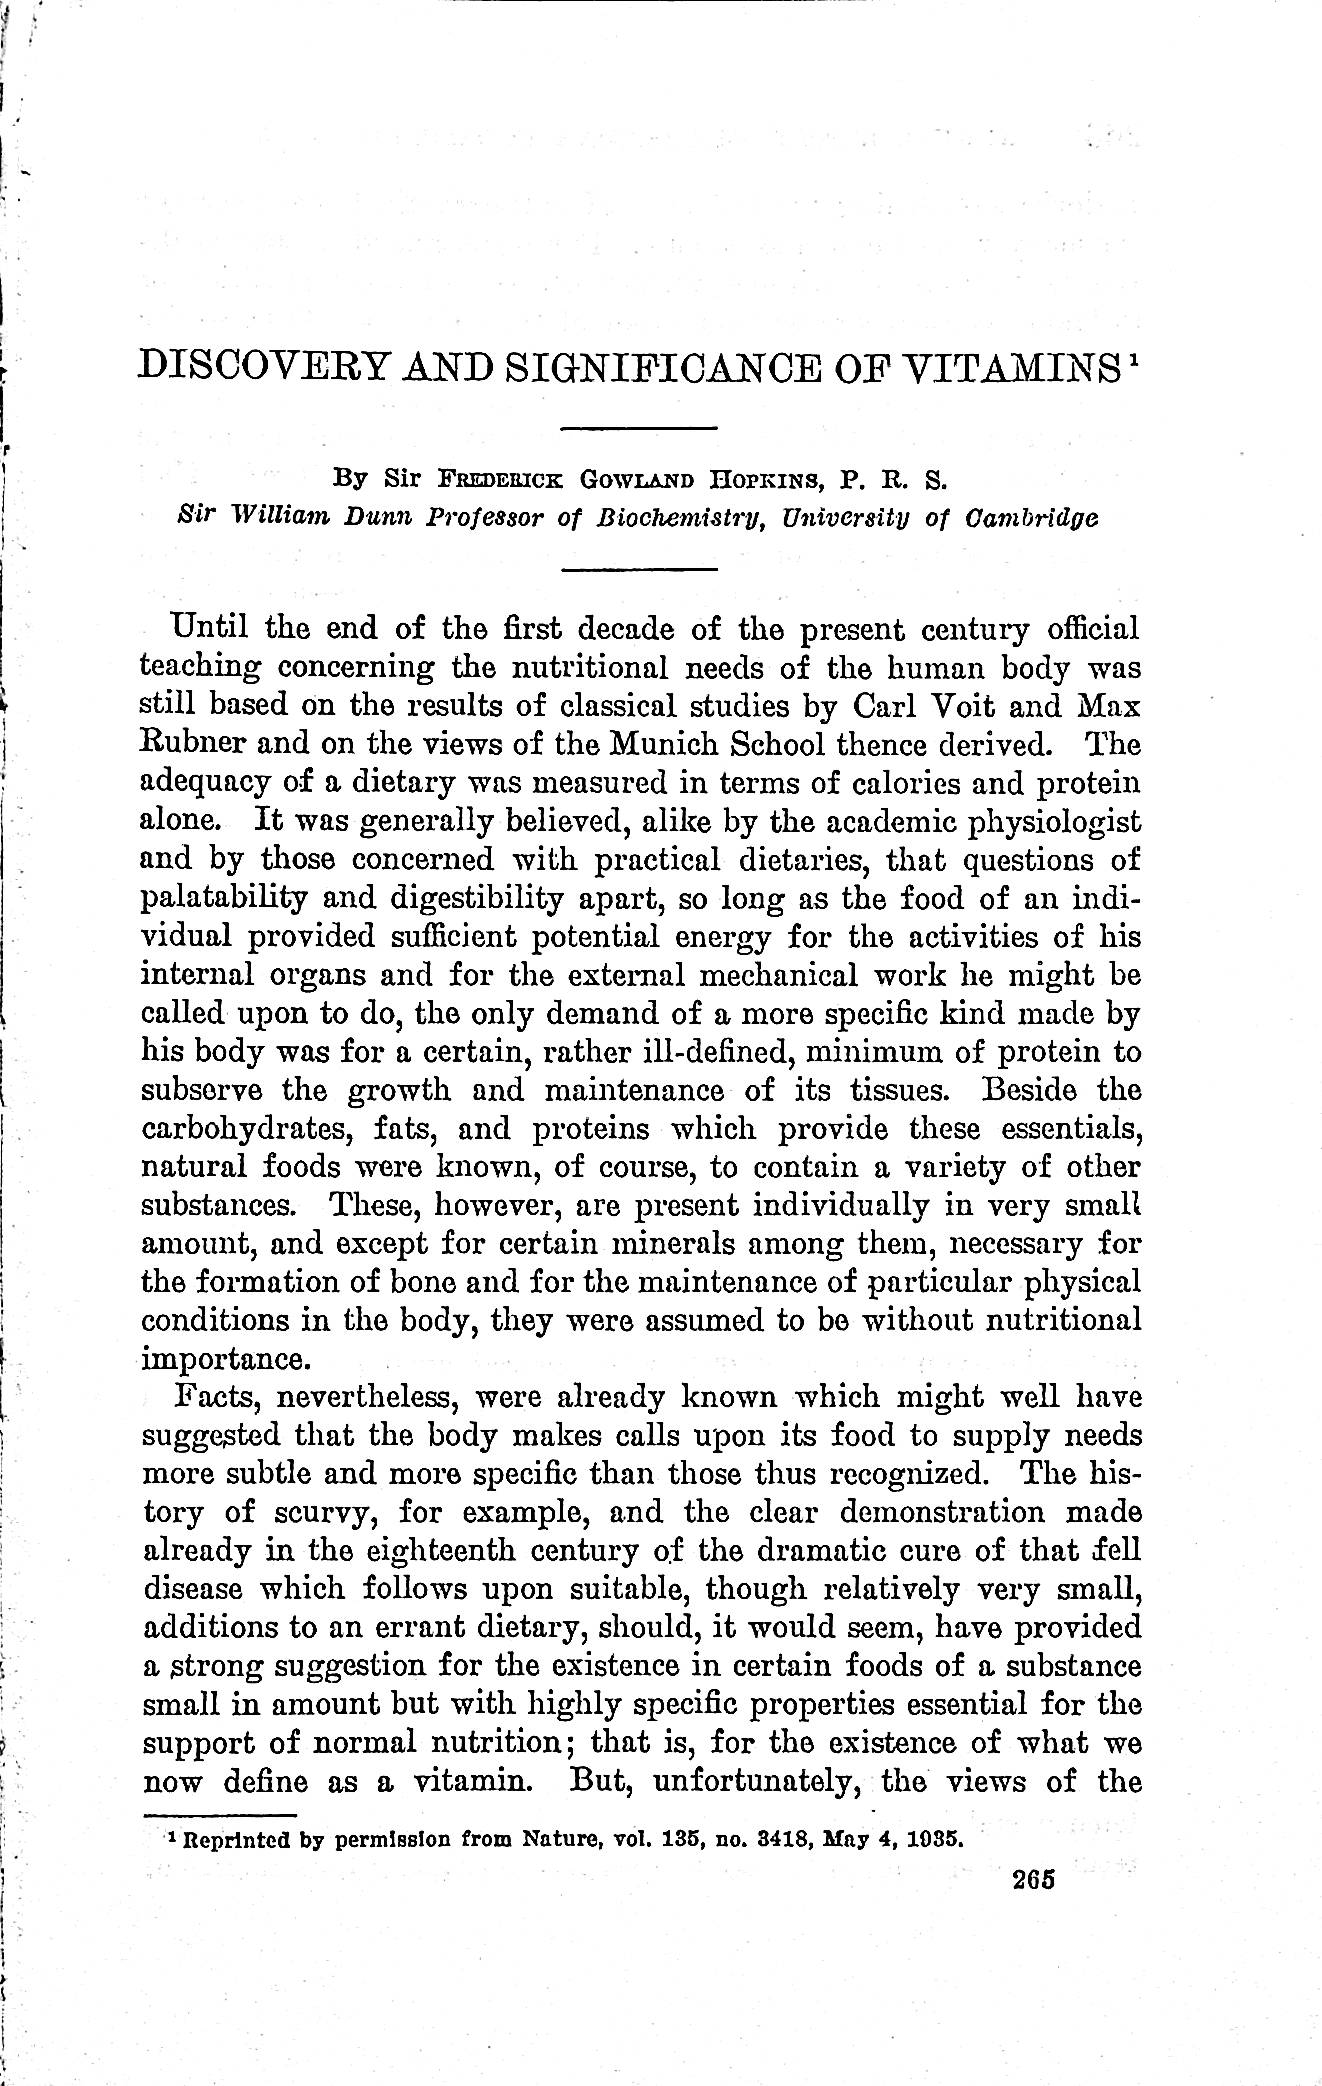 Image for Discovery and significance of vitamins (Annual Report of the Smithsonian Institution, 1935, reprinted from Nature Vol. 135, May 4, 1935)